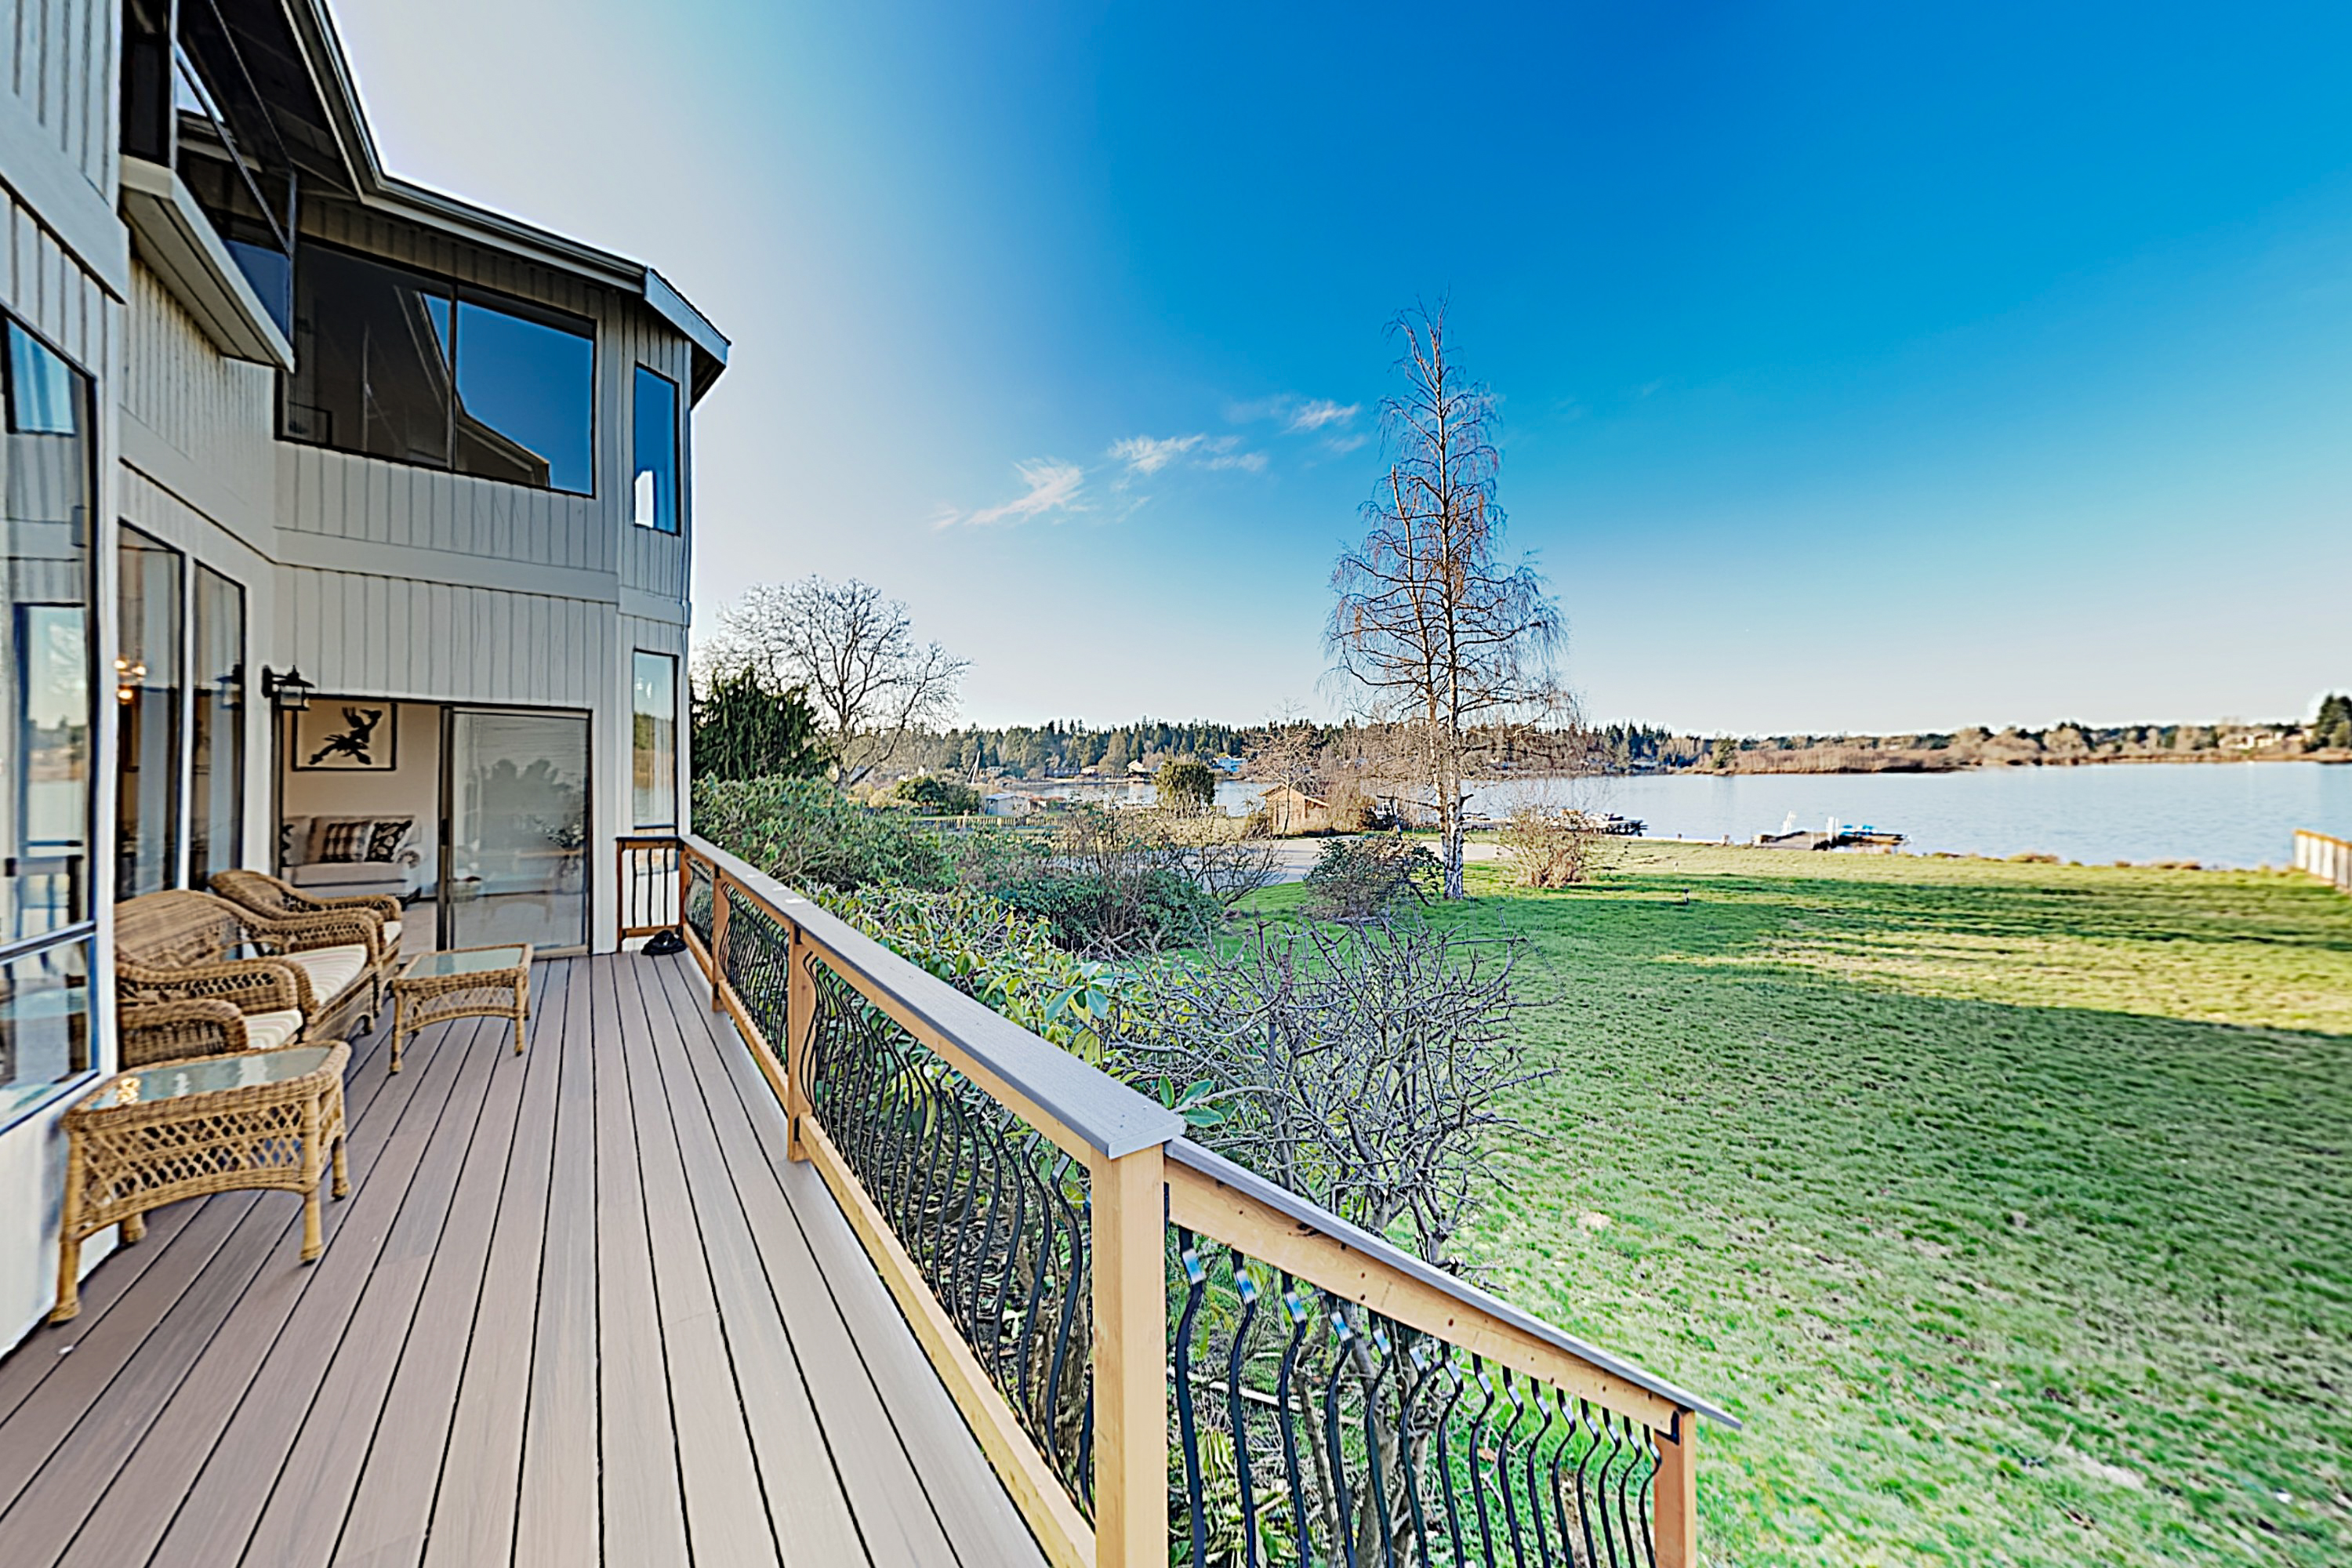 Edmonds WA Vacation Rental Welcome! This home